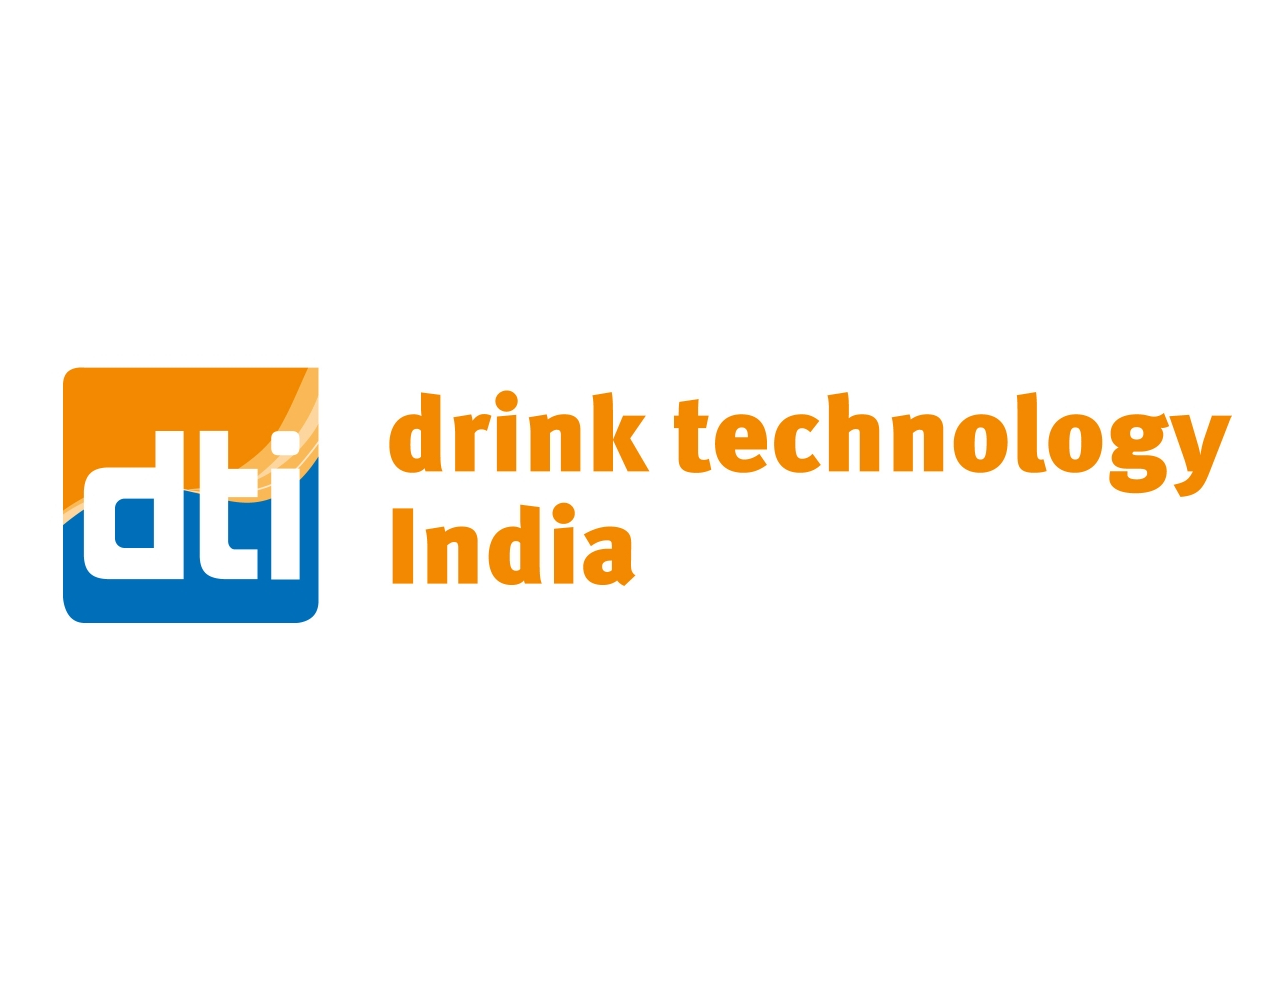 drink technology India now online